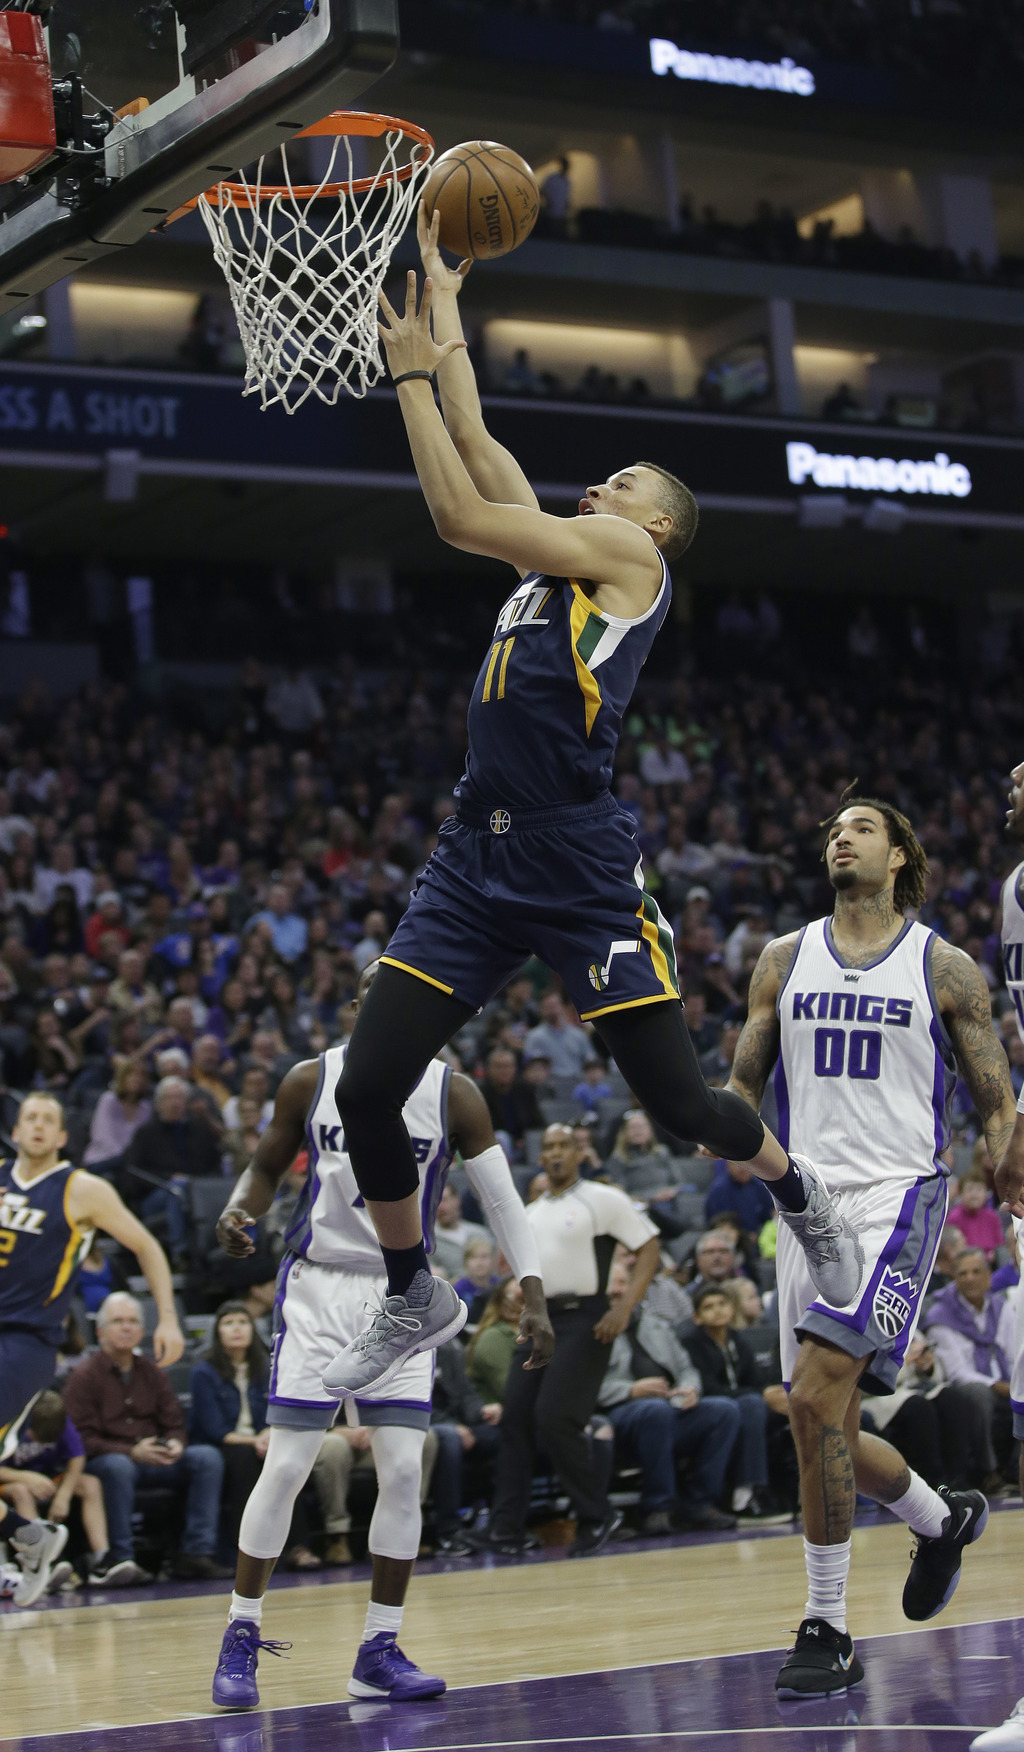 Utah Jazz guard Dante Exum, center, goes to the basket as Sacramento Kings' Ty Lawson, left, and Willie Cauley-Stein, right, look on du...